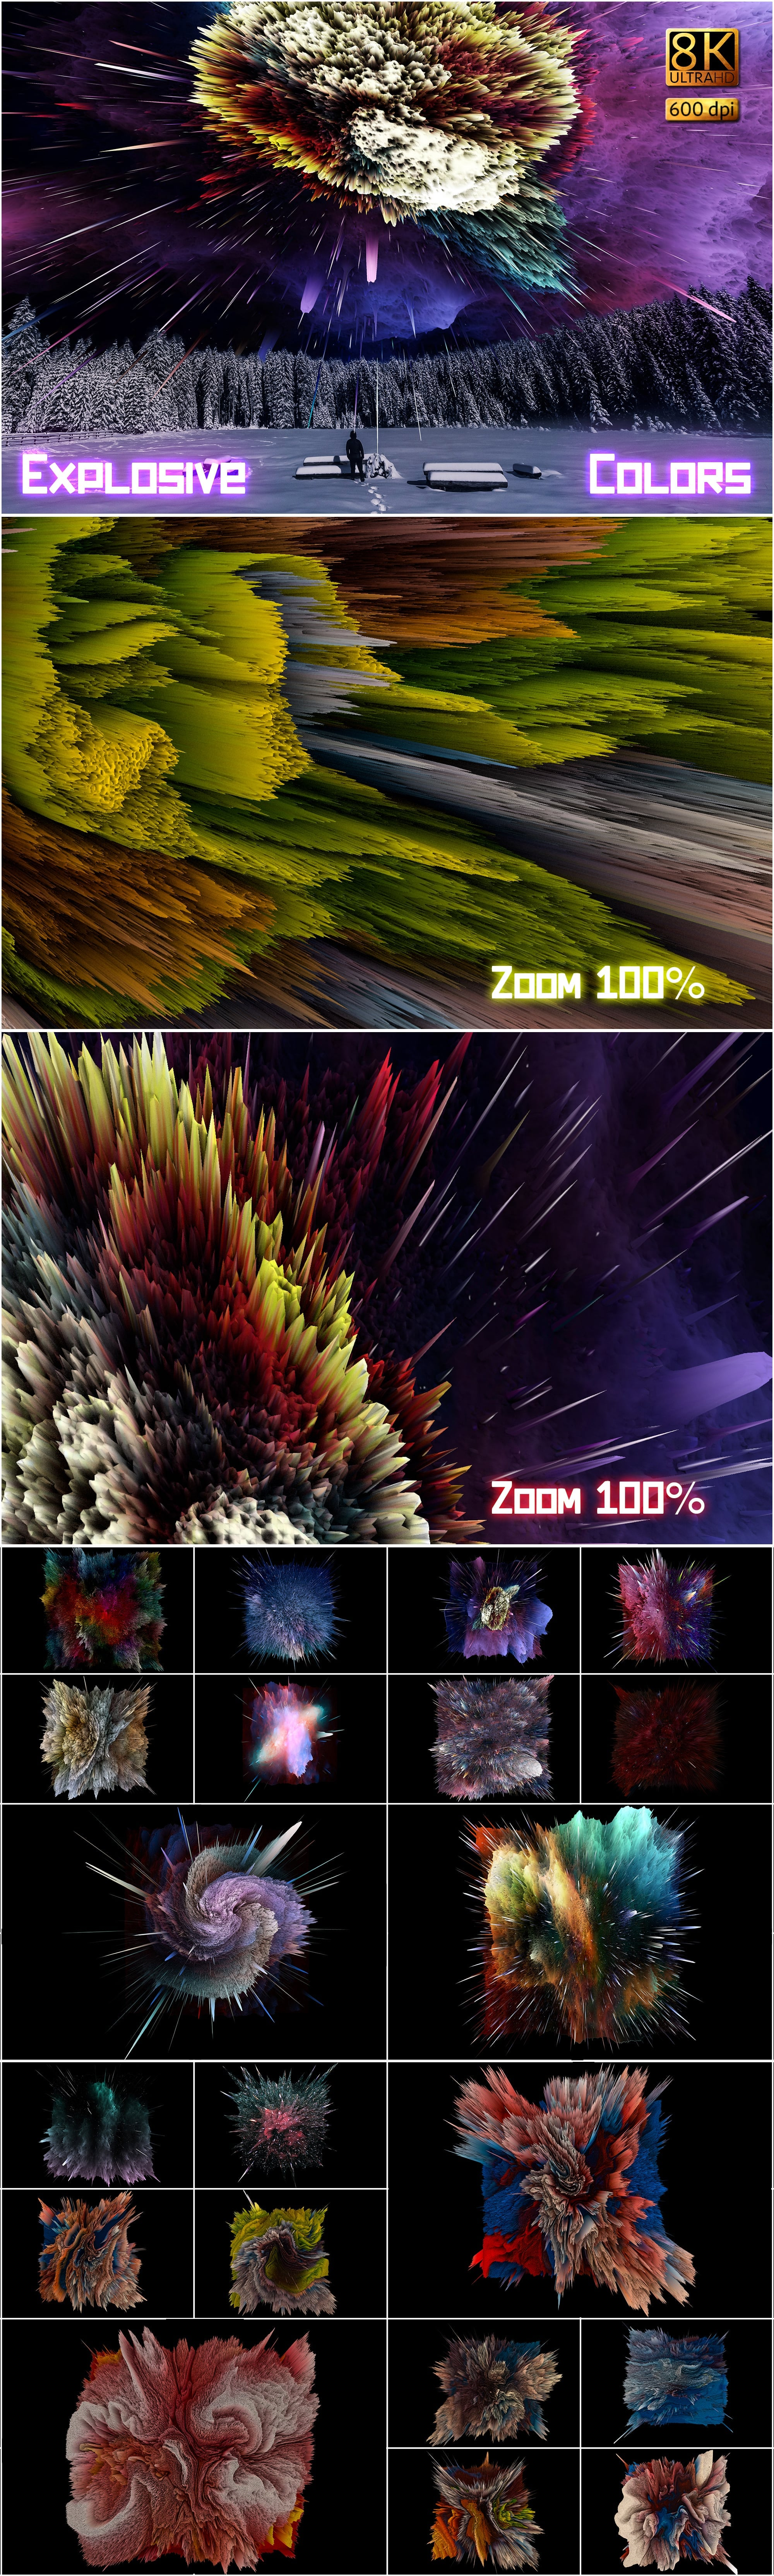 877 Detailed  Alien Overlays - $24 - Explosive Colors